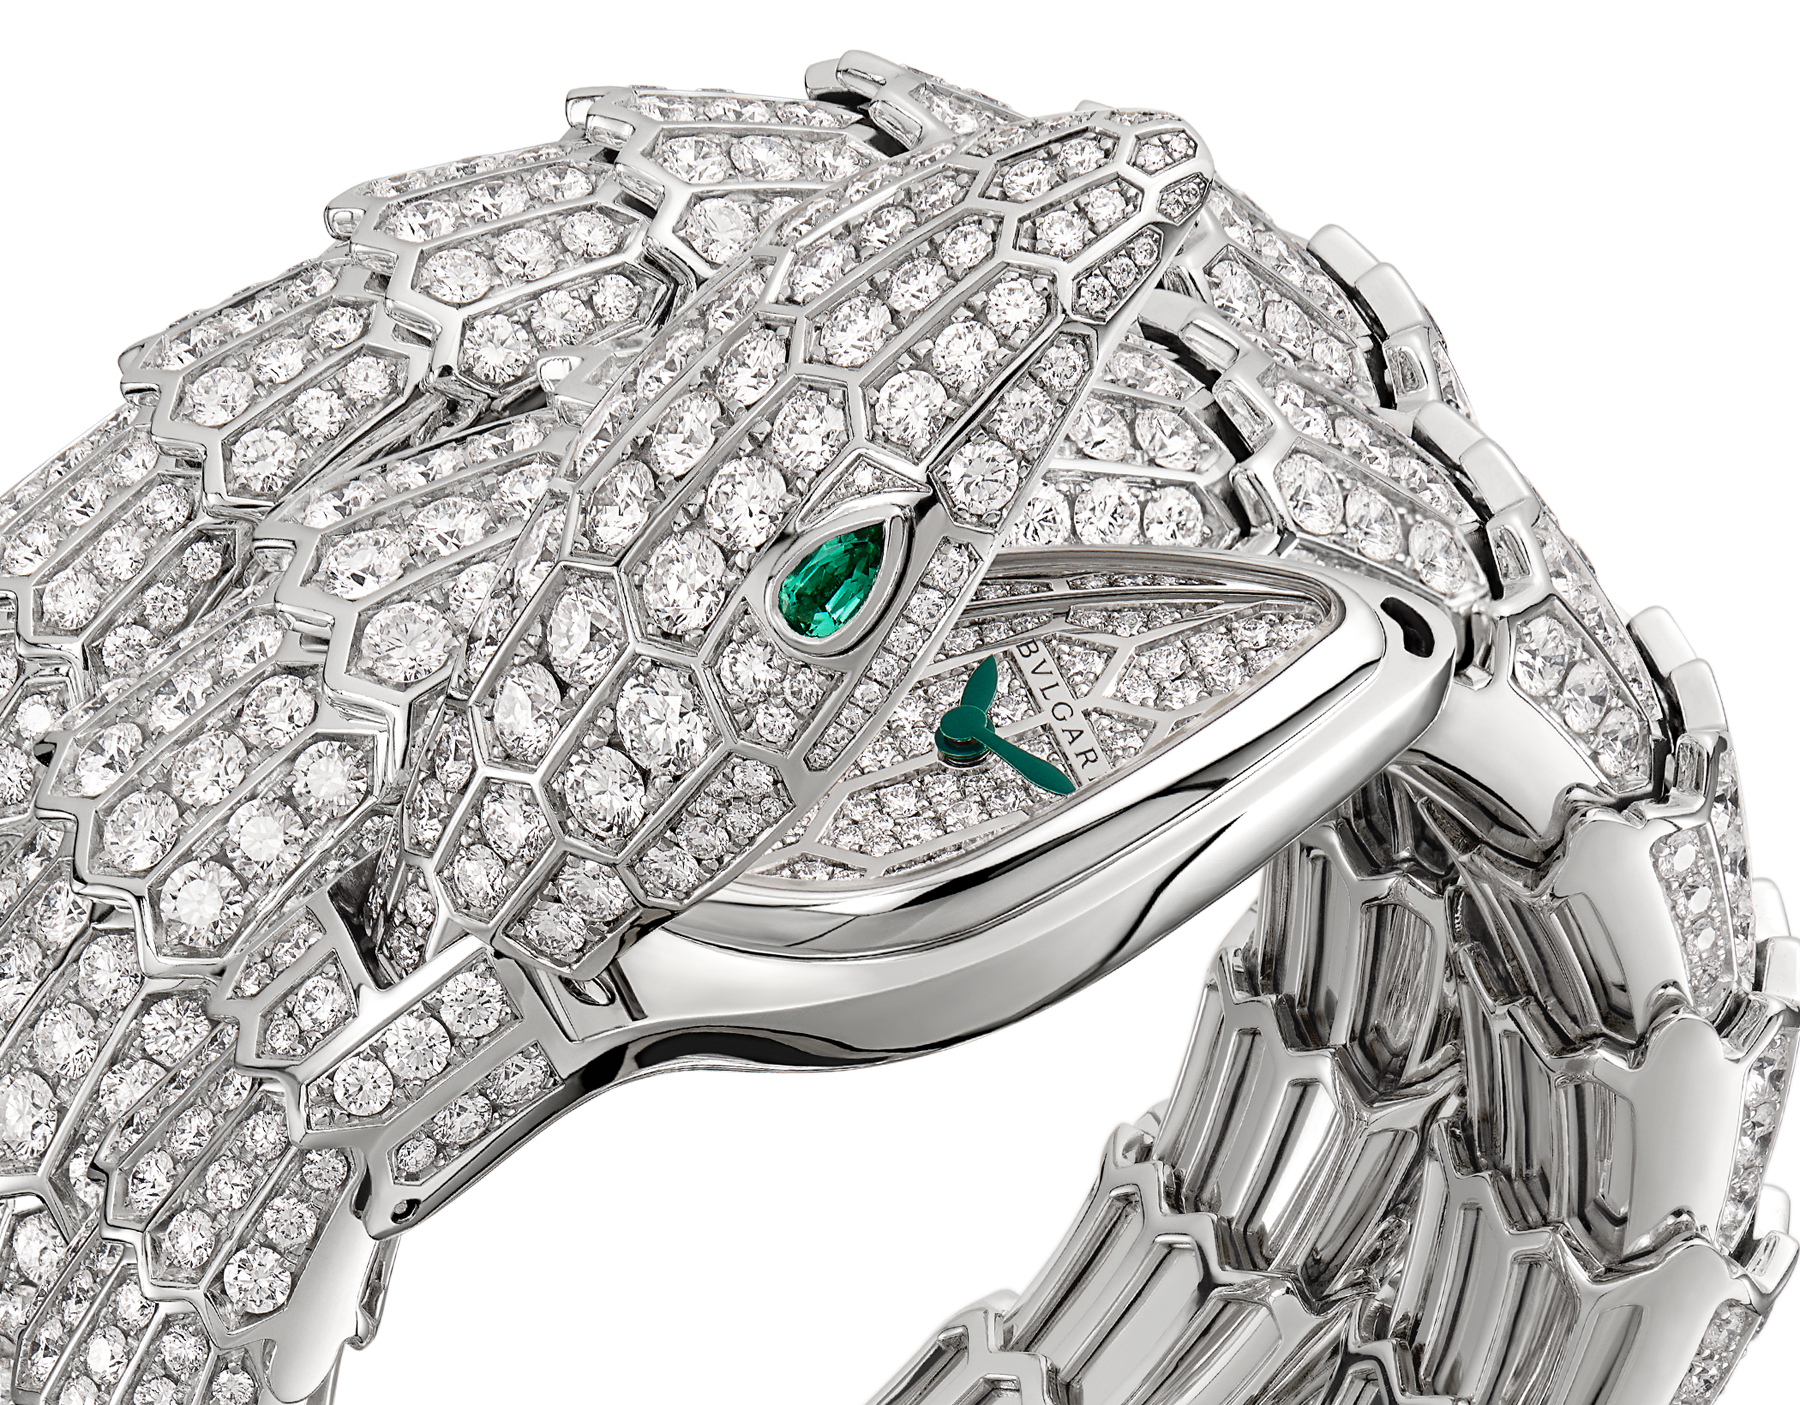 Serpenti Secret Watch with 18 kt white gold head, dial and double spiral bracelet, all set with brilliant cut diamonds, emerald eyes and 18 kt white gold case. 102701 image 2